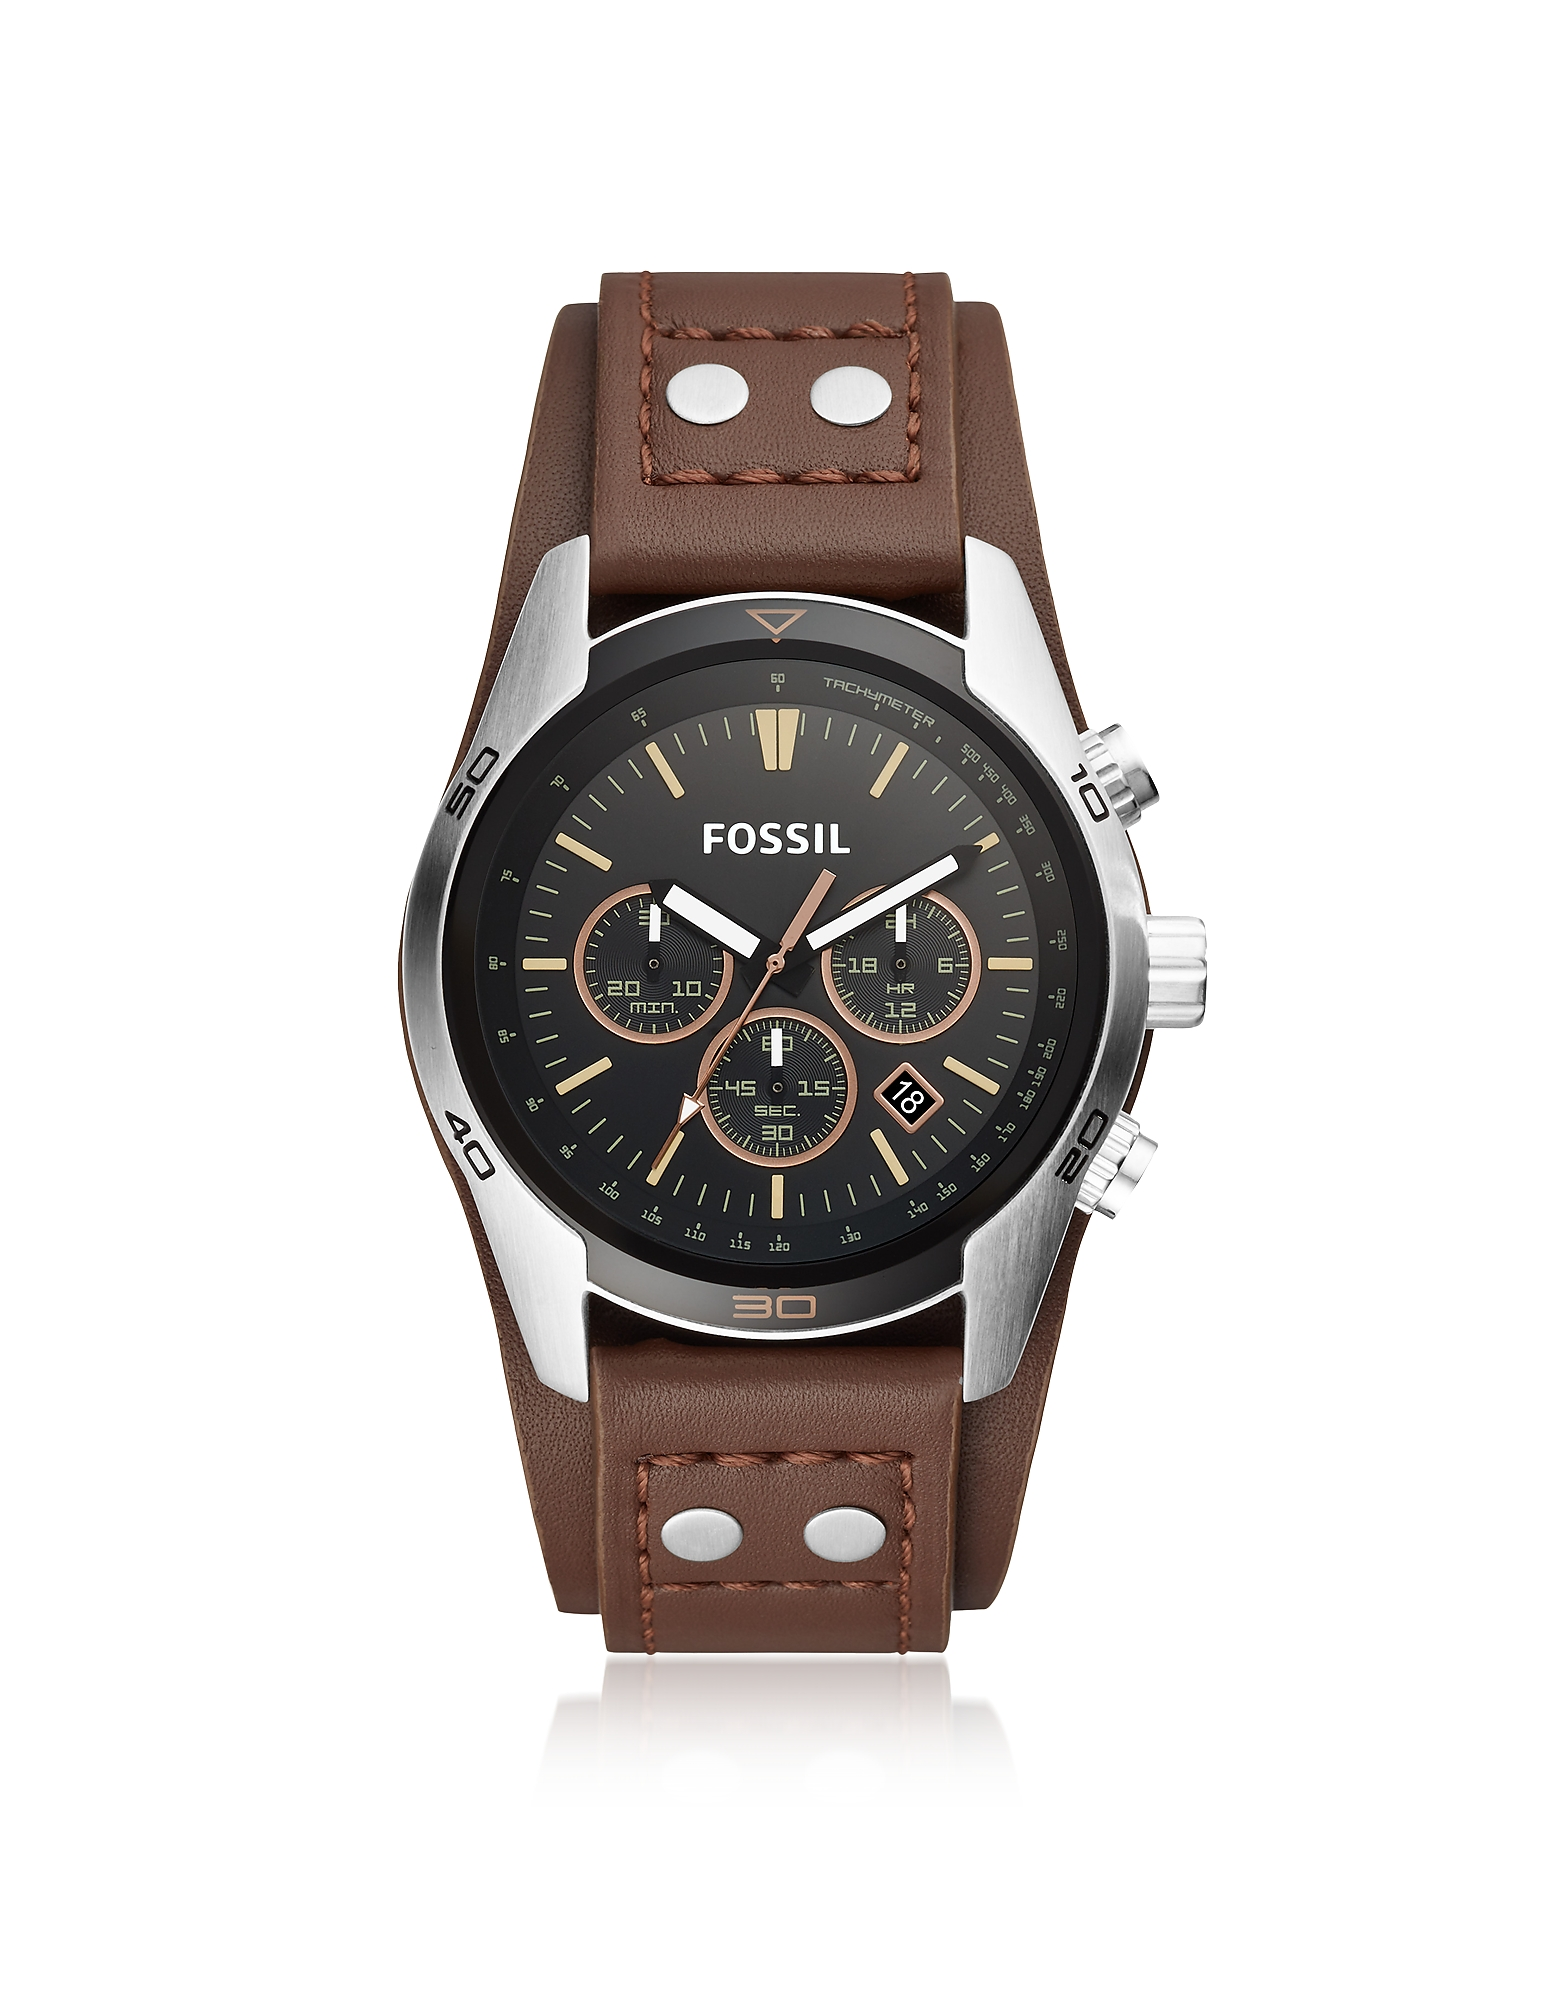 Fossil Men's Watches, Coachman Chronograph Brown Leather Men's Watch